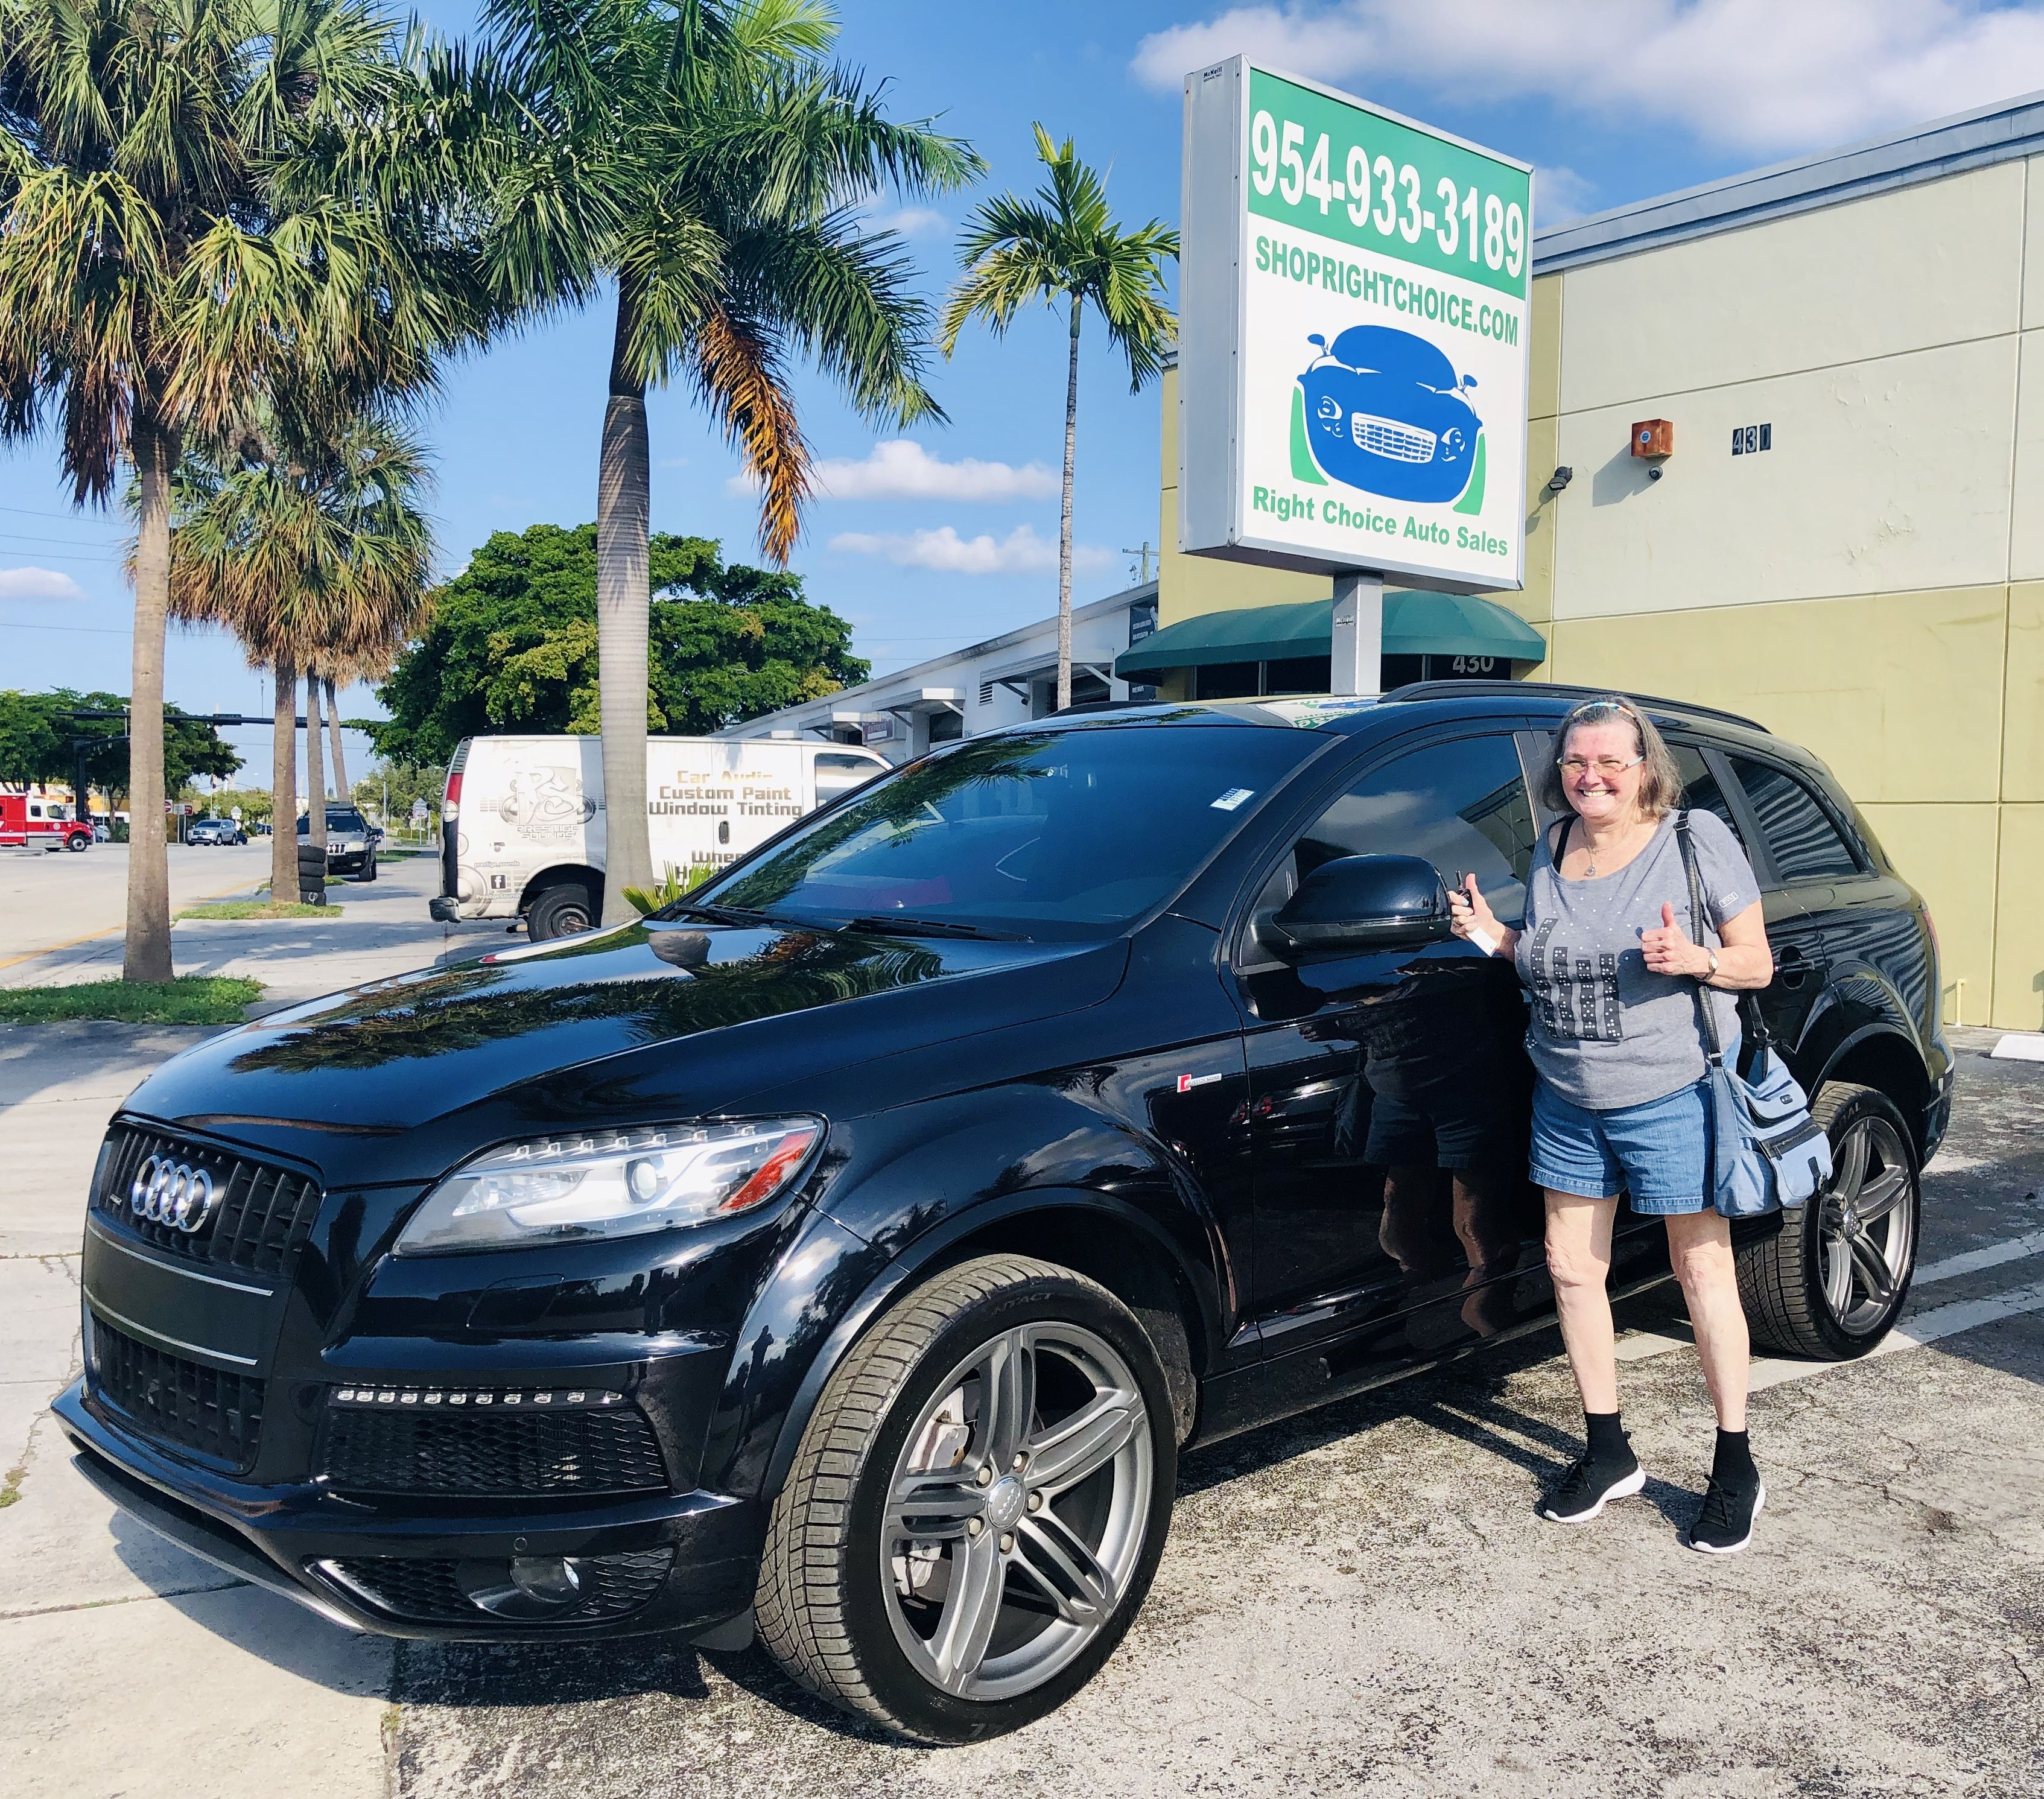 Toni Saved $5,660 On This Spectacular 2015 Audi Q7